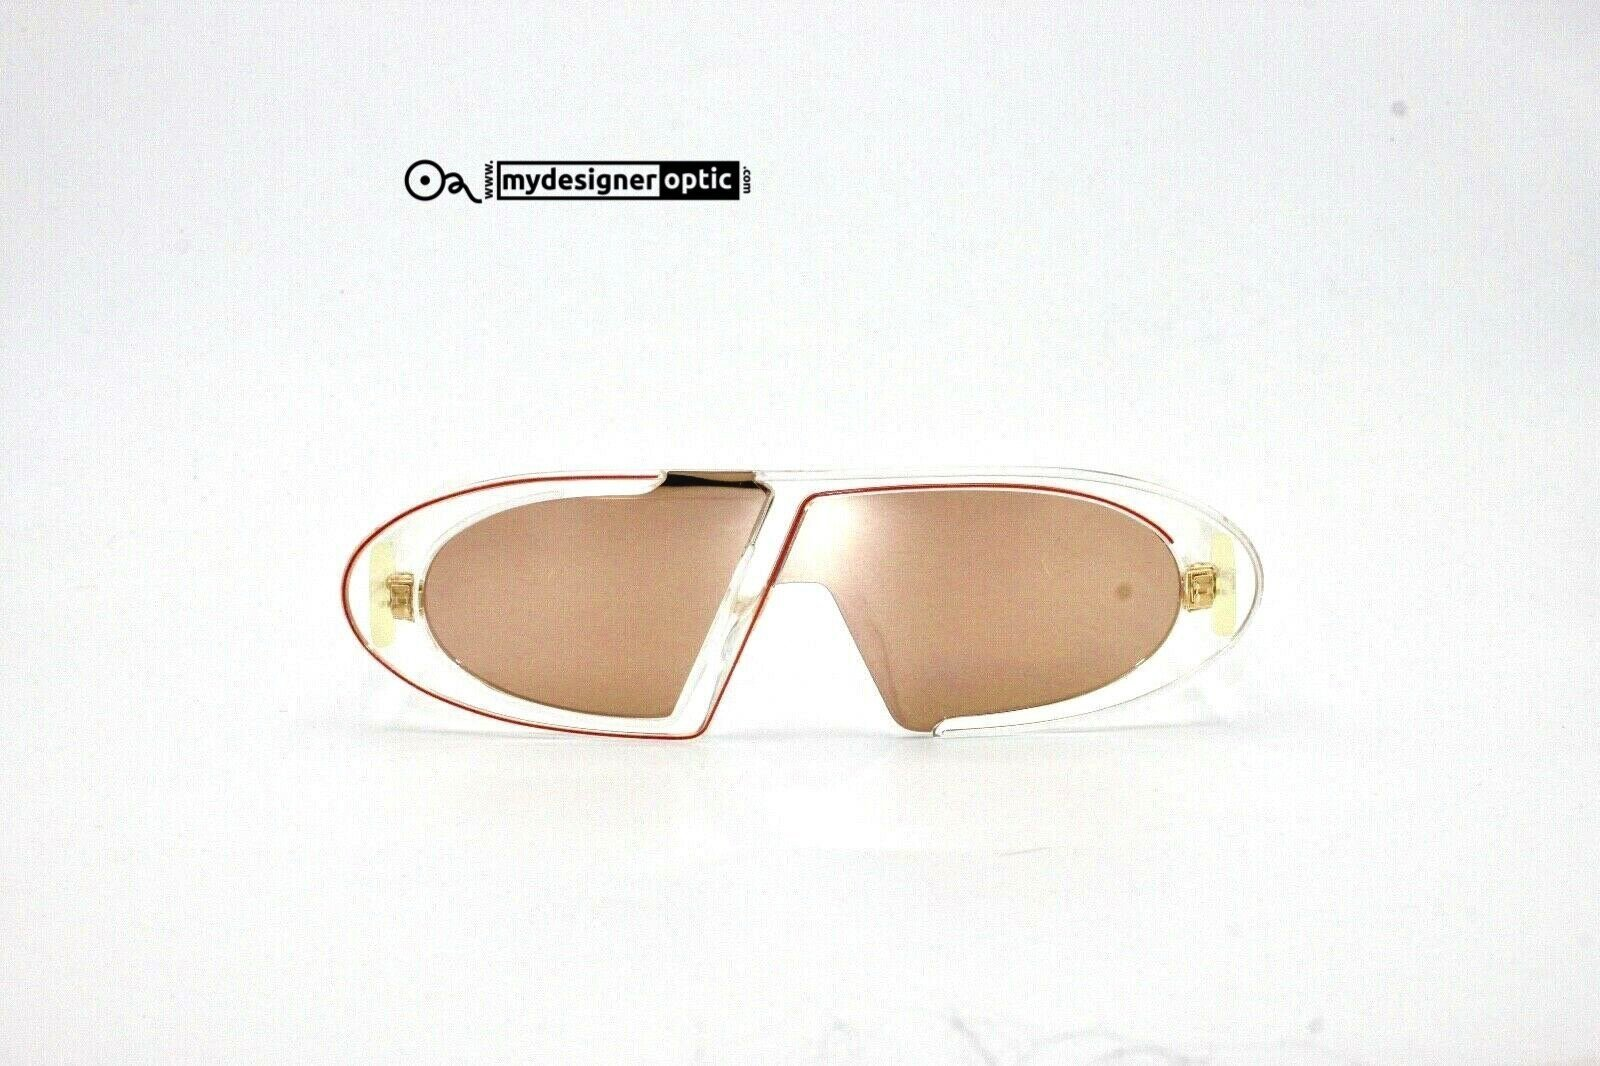 Christian Dior Oblique Sunglasses 900SQ 145 Made in Italy WBL15AWD6N - Mydesigneroptic